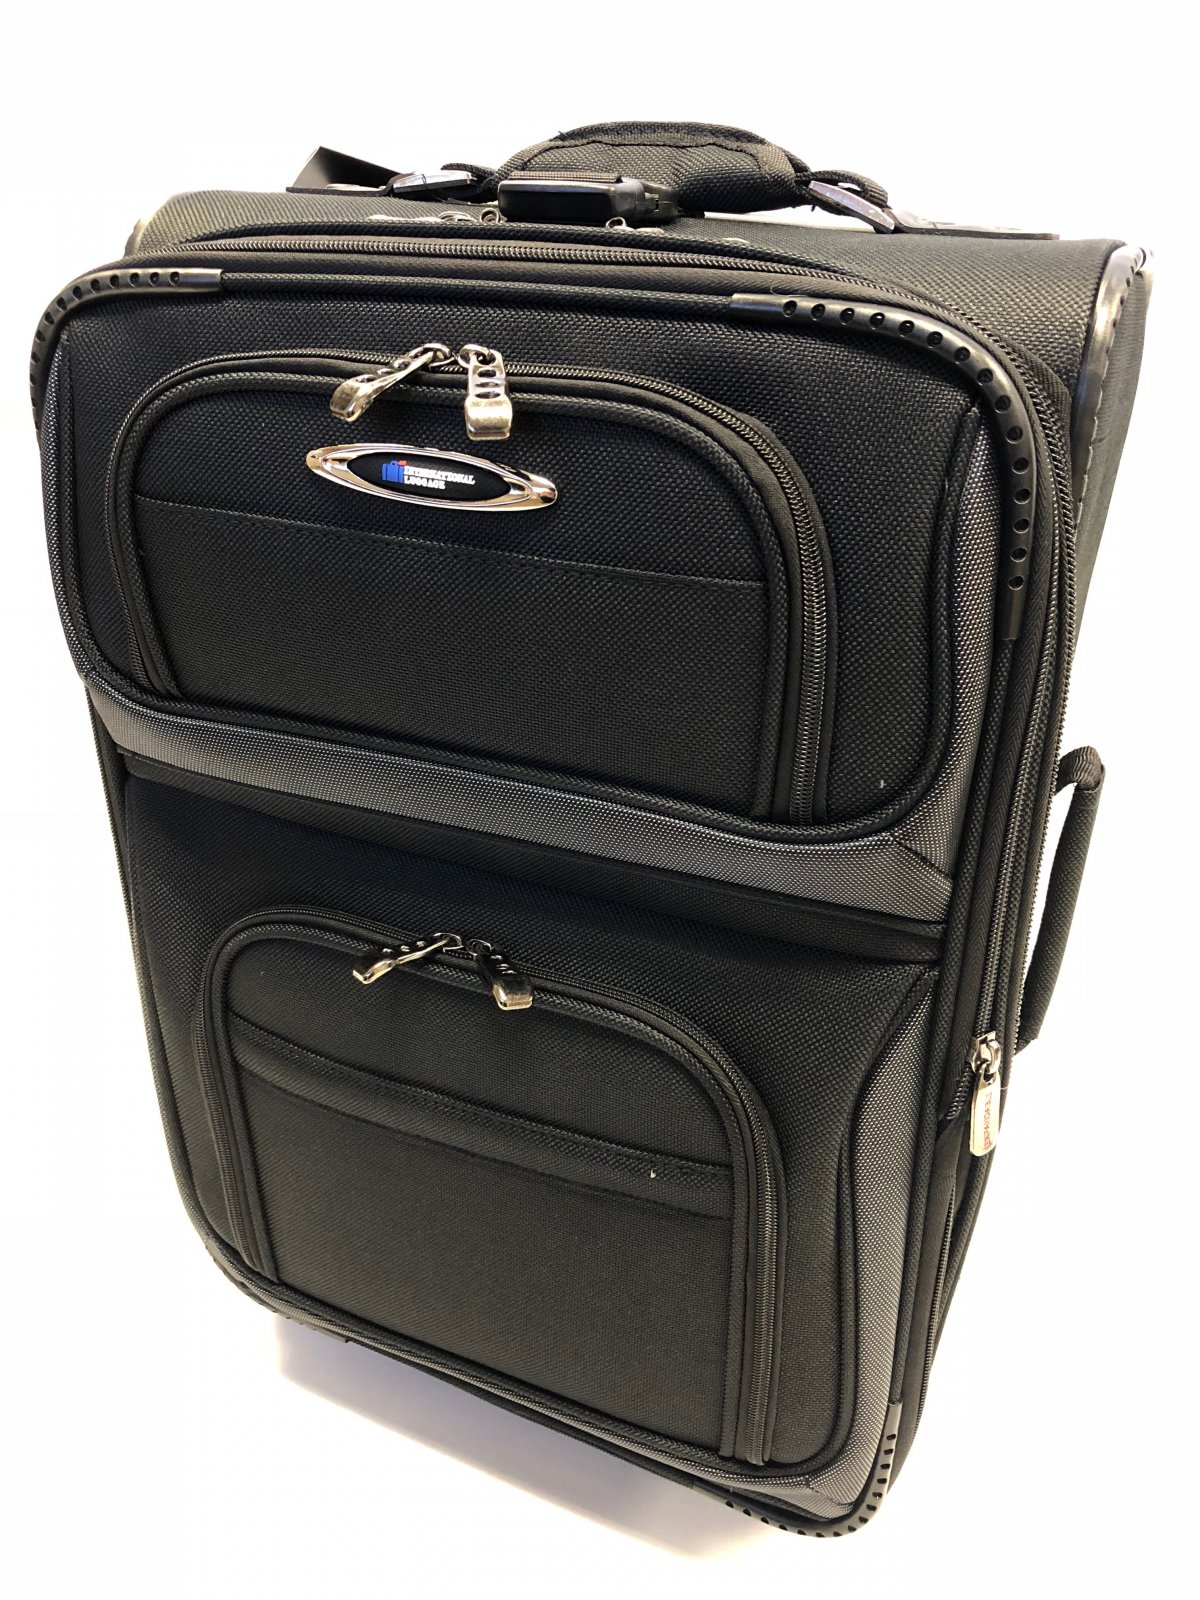 Rocky Mountain Series 21 Carry On Black (domestic travel dimensions)